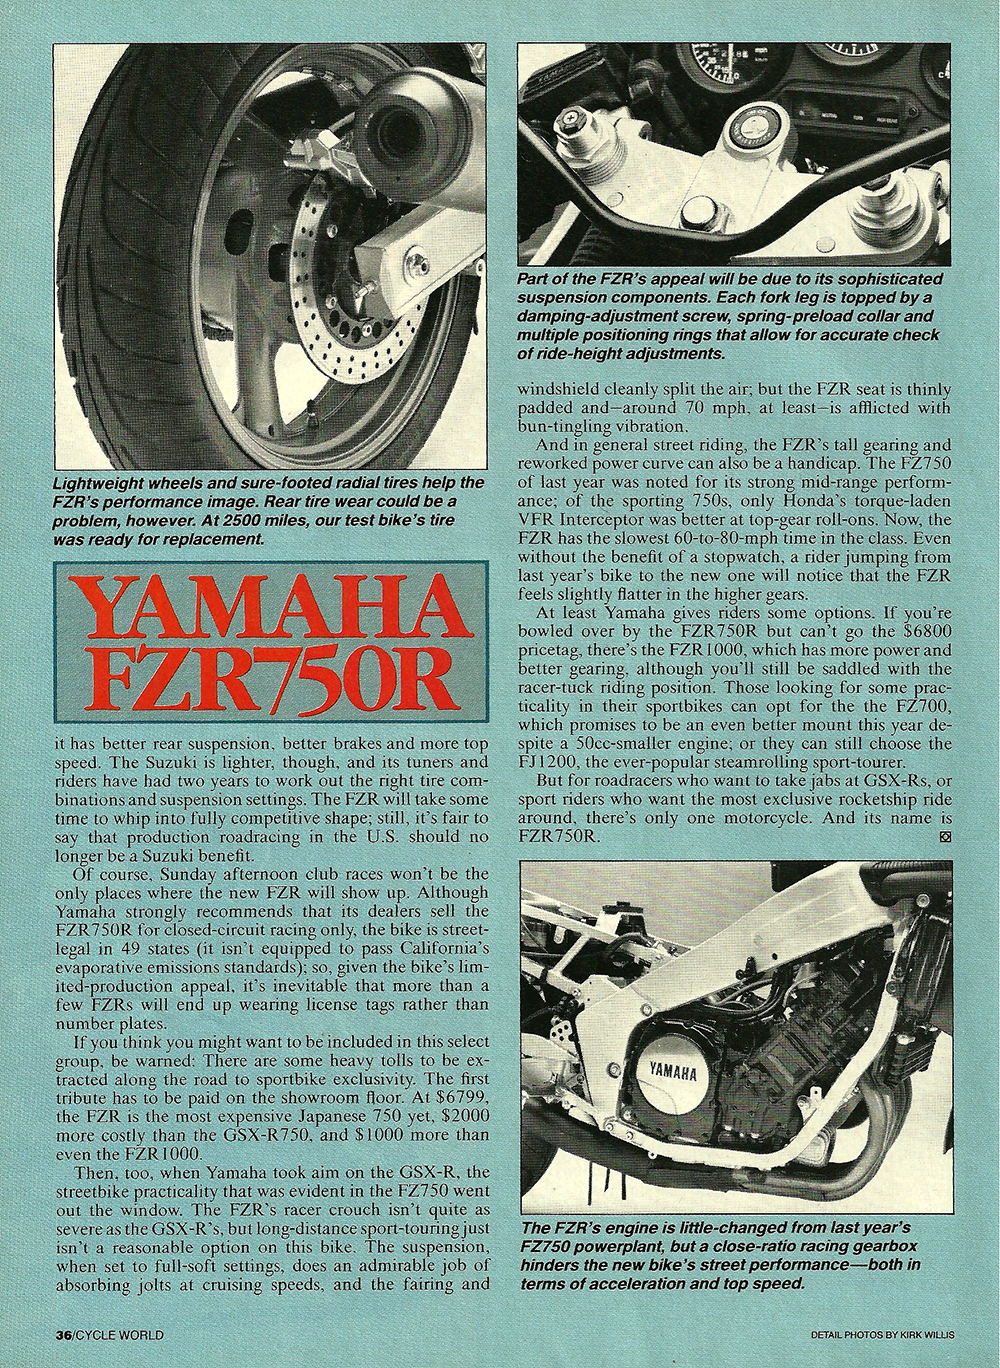 1987 Yamaha FZR750R road test 05.jpg